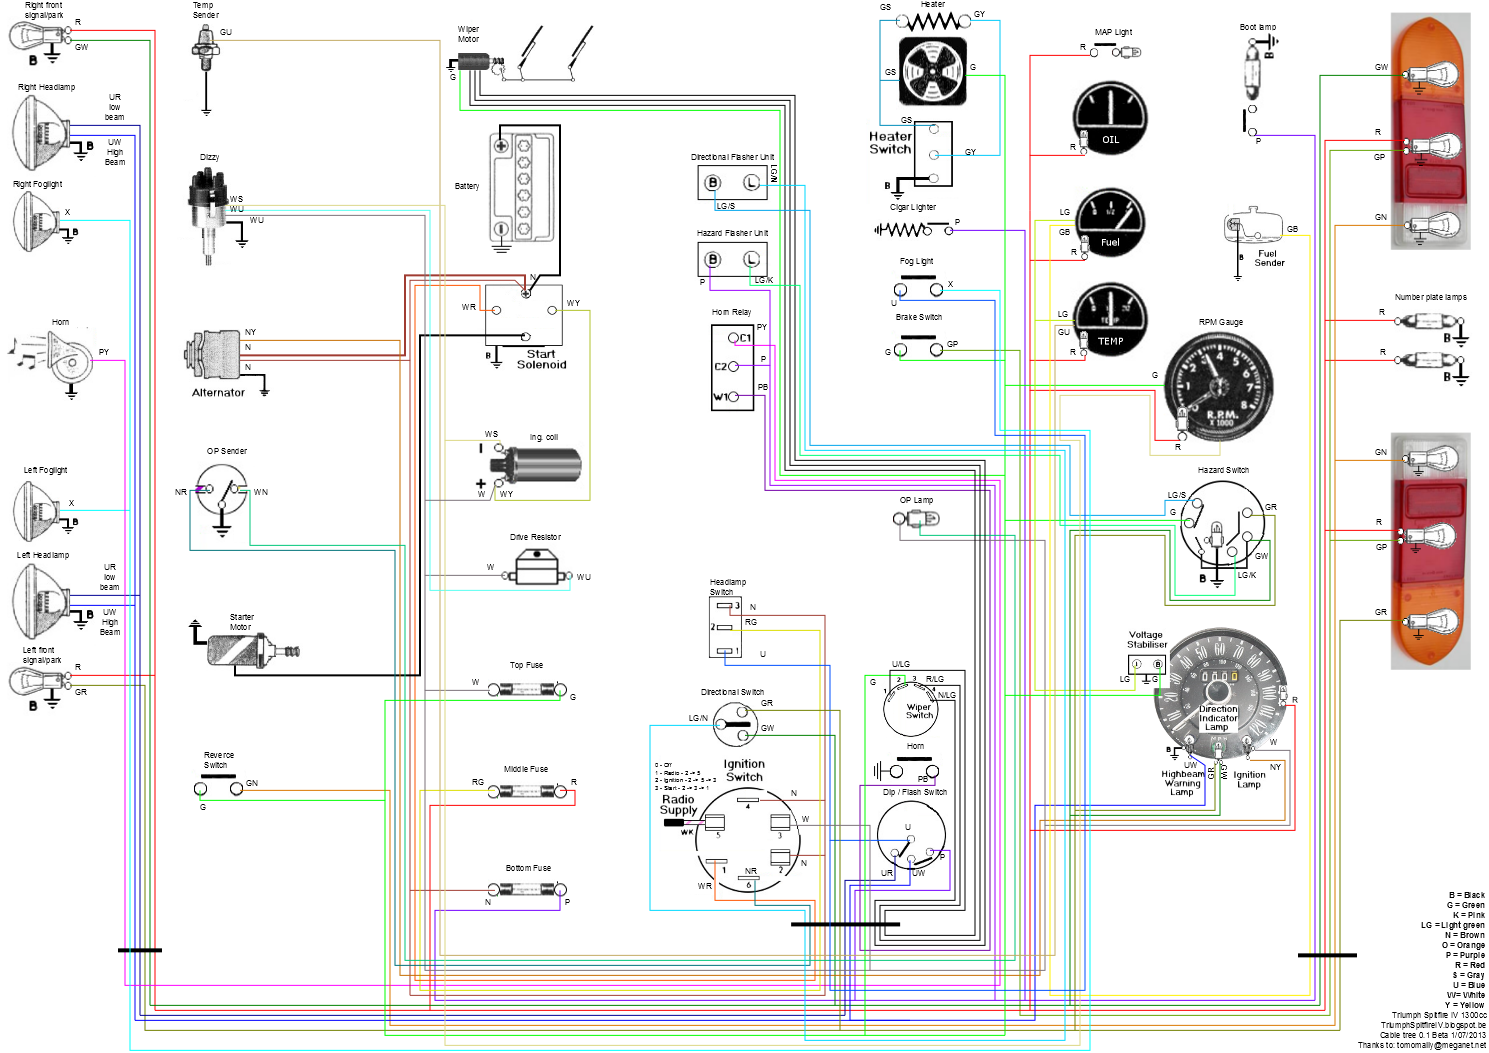 spitfire iv wiring diagram mk4 wiring diagram mk4 tdi wiring diagram \u2022 wiring diagrams j 2005 E55 AMG Performance Parts at soozxer.org